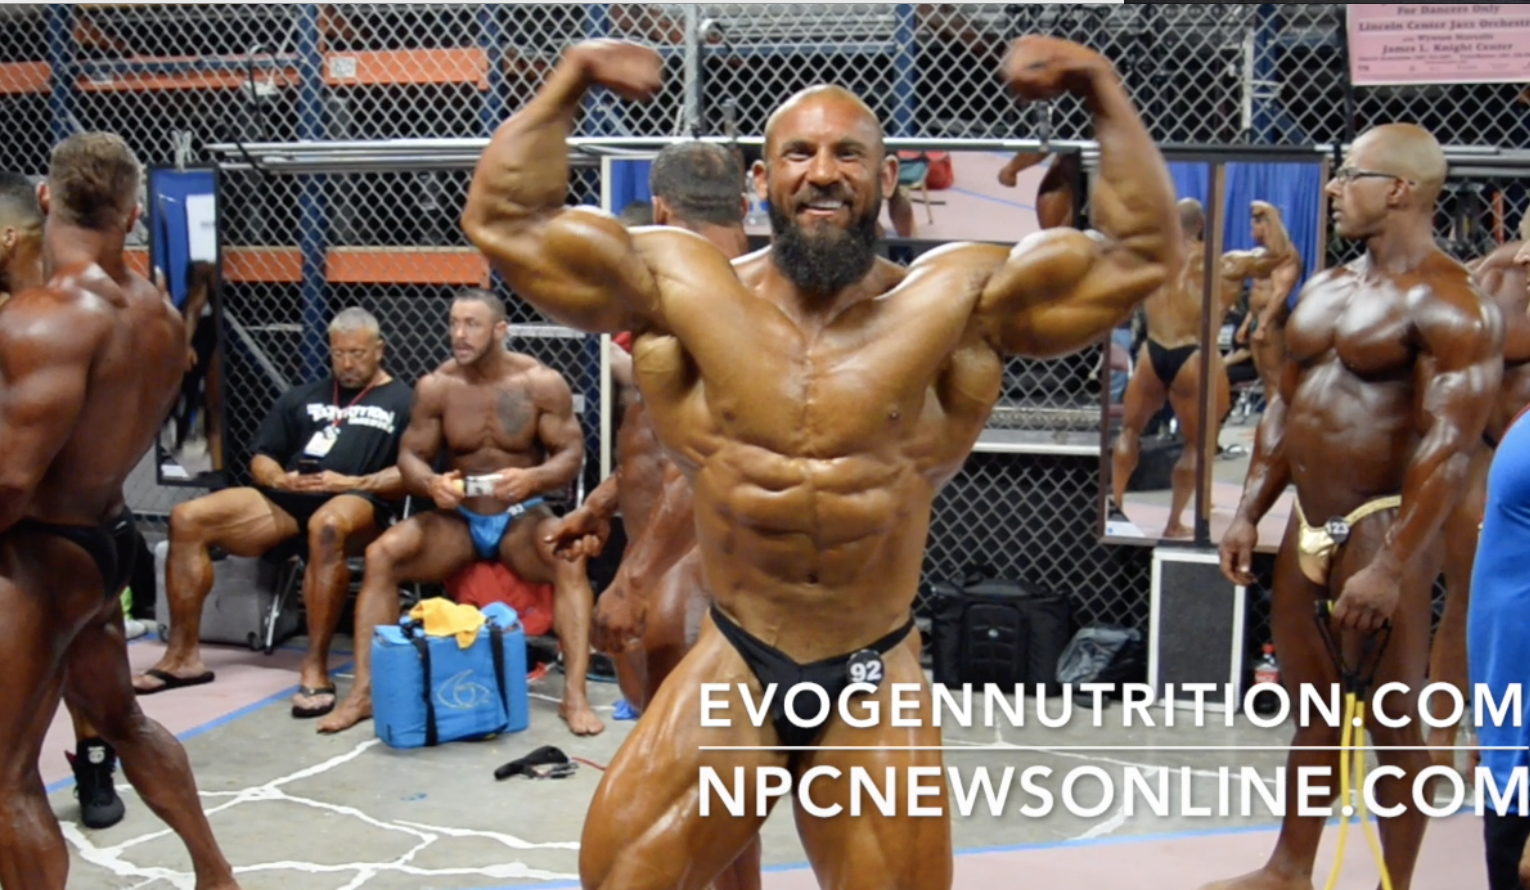 2017 NPC National Bodybuilding Championships: Bodybuilding Backstage Video Part 1.